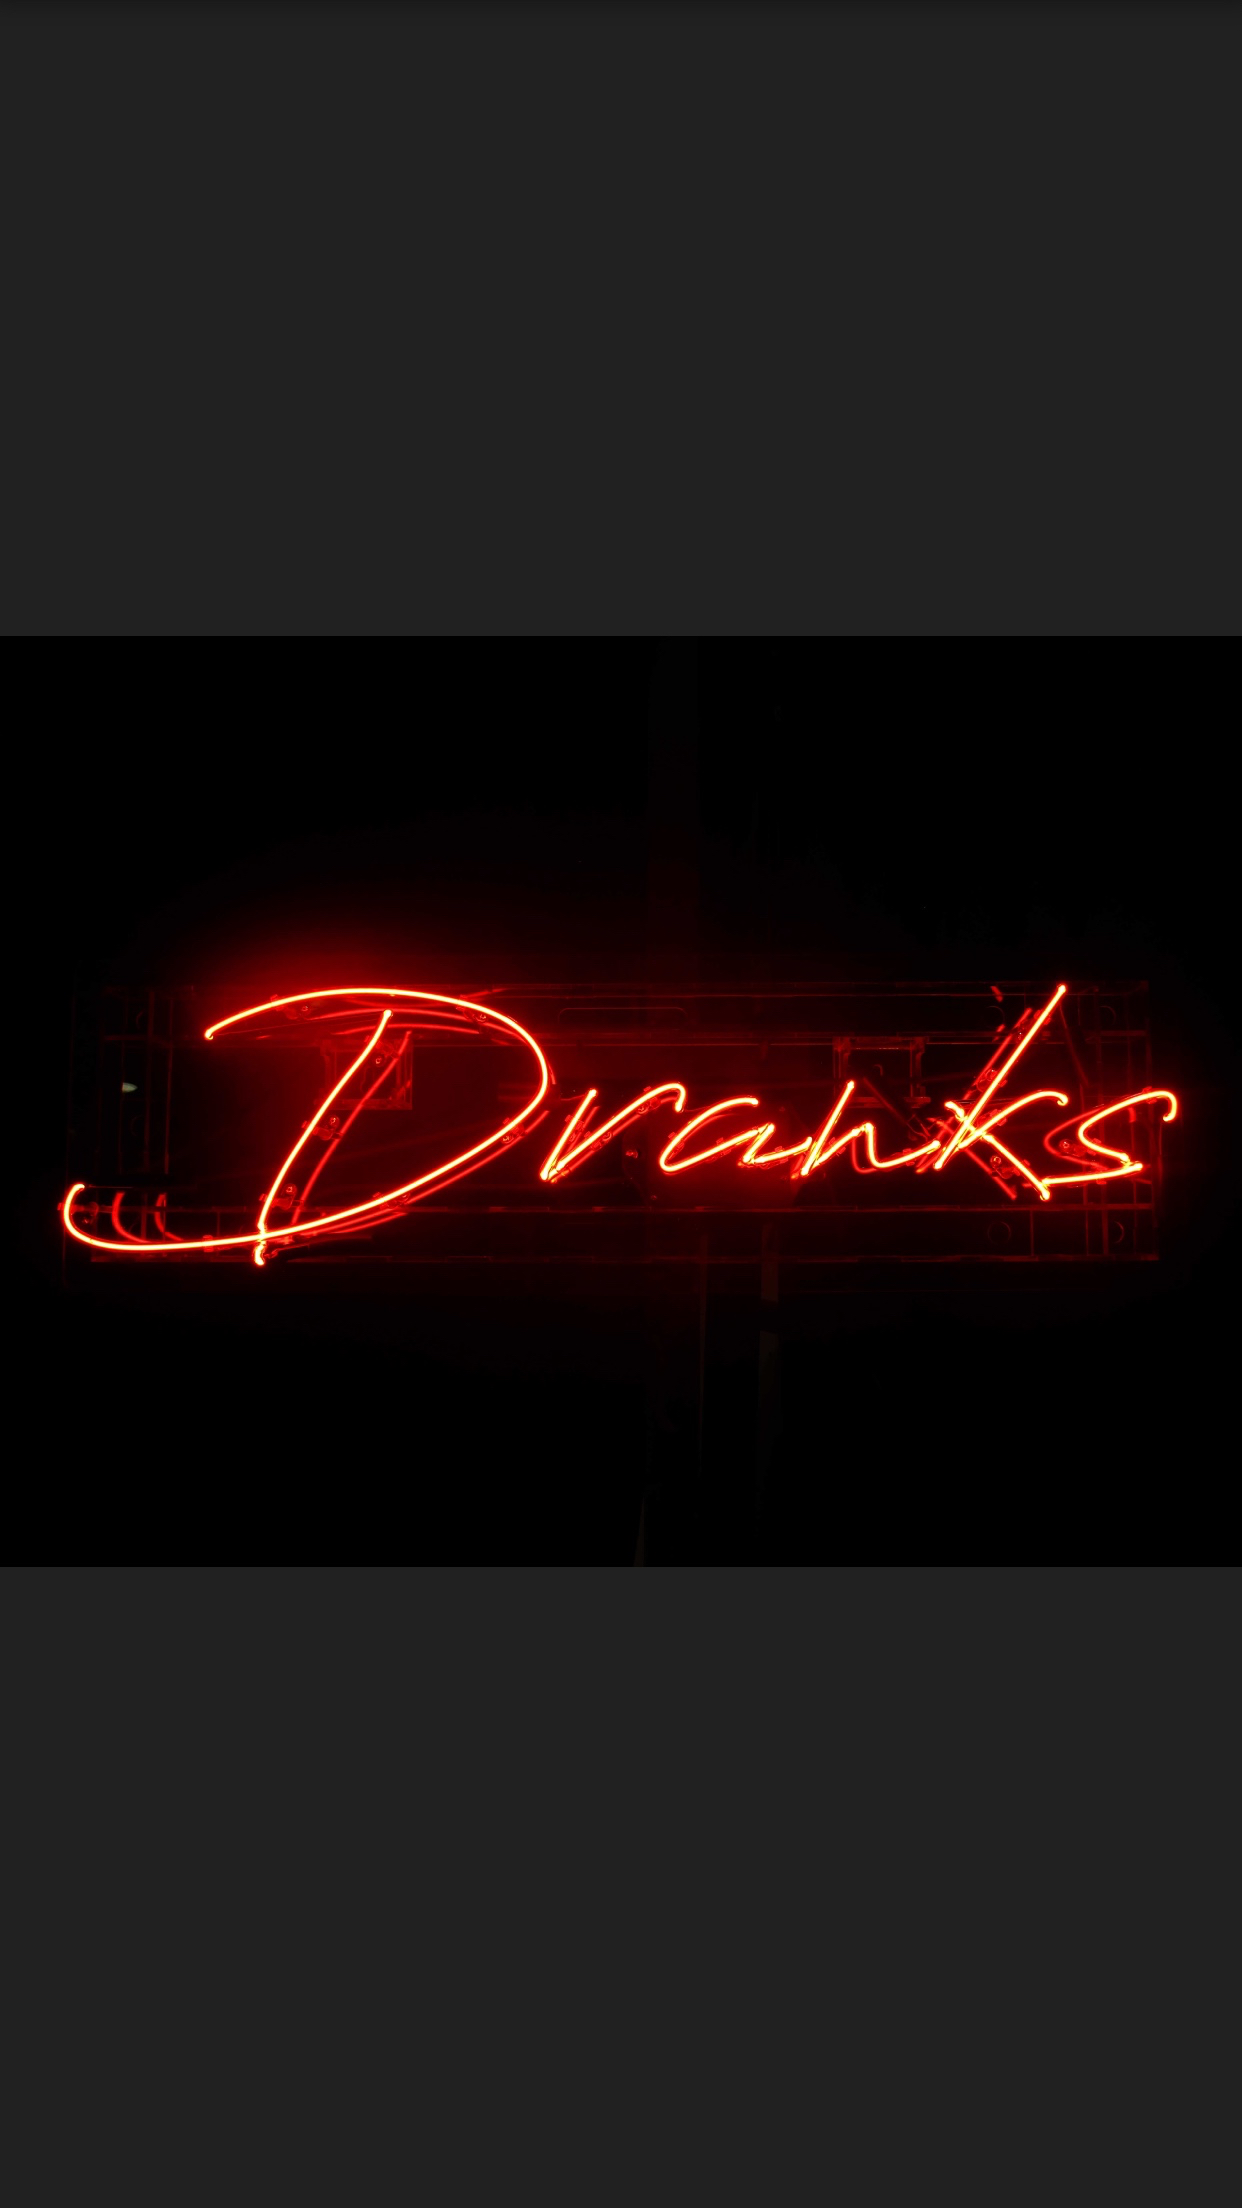 Dranks Neon Sign - 1m long x 300mm wide